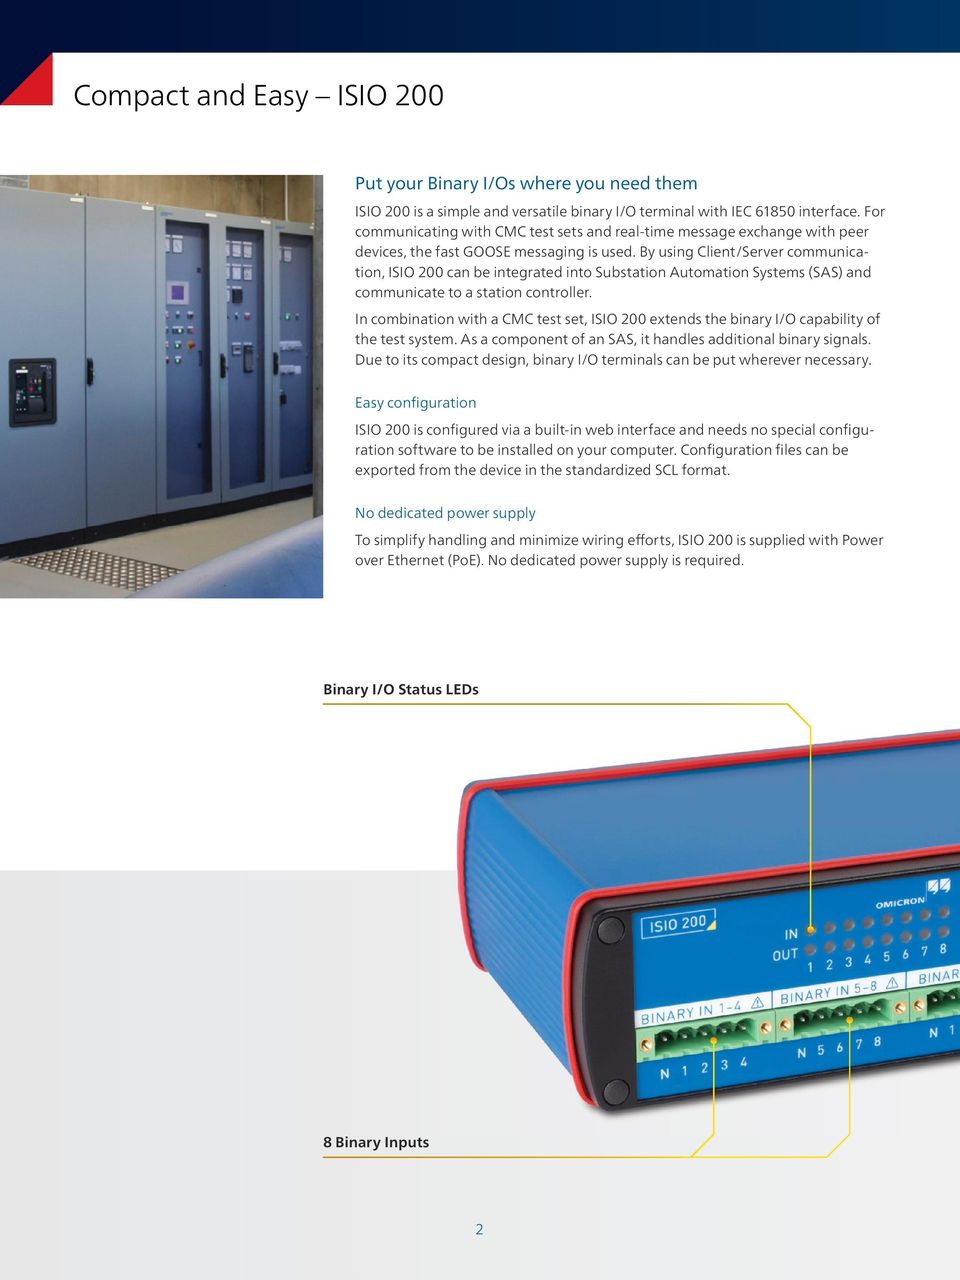 By using Client/Server communication, ISIO 200 can be integrated into Substation Automation Systems (SAS) and communicate to a station controller.